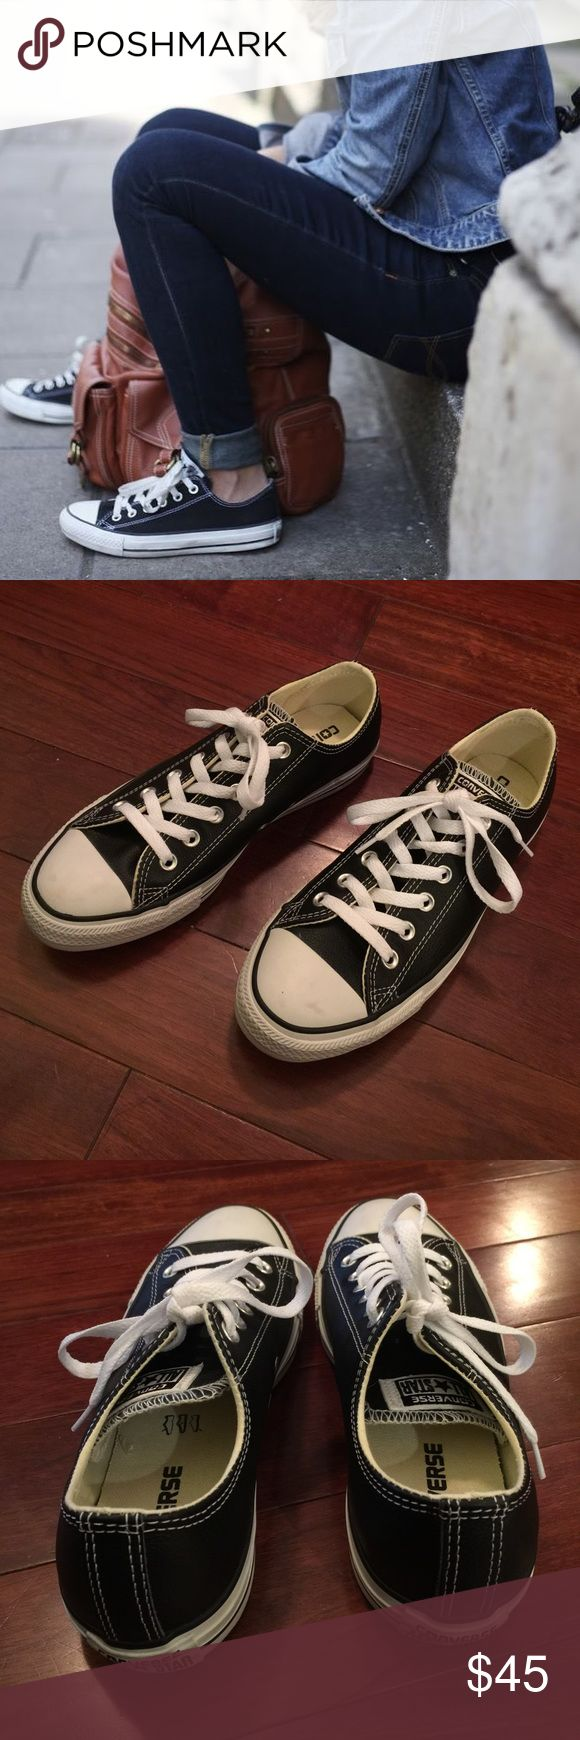 • { Converse } • Chuck Taylor Leather Sneakers Converse Chuck Taylor Leather Casual Sneakers. Unisex. Size: Men's 7 or Women's 9. In excellent, like new condition! Converse Shoes Sneakers